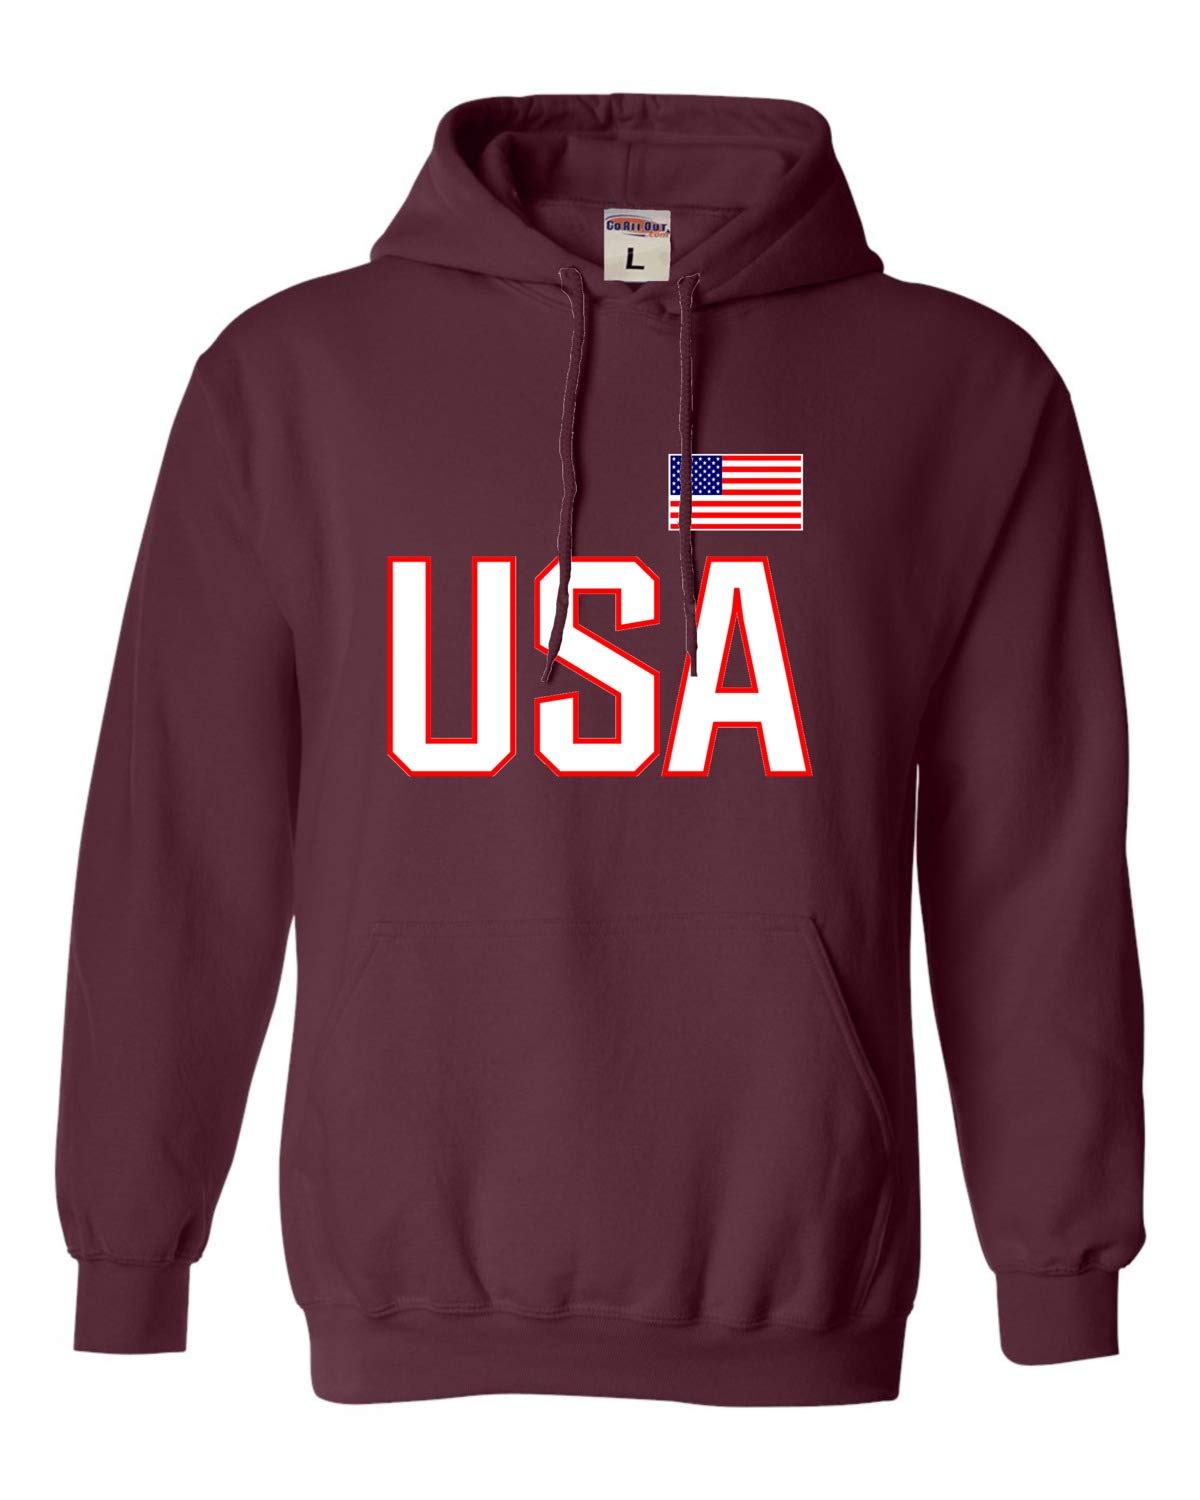 Go All Out Adult USA National Pride Sweatshirt Hoodie